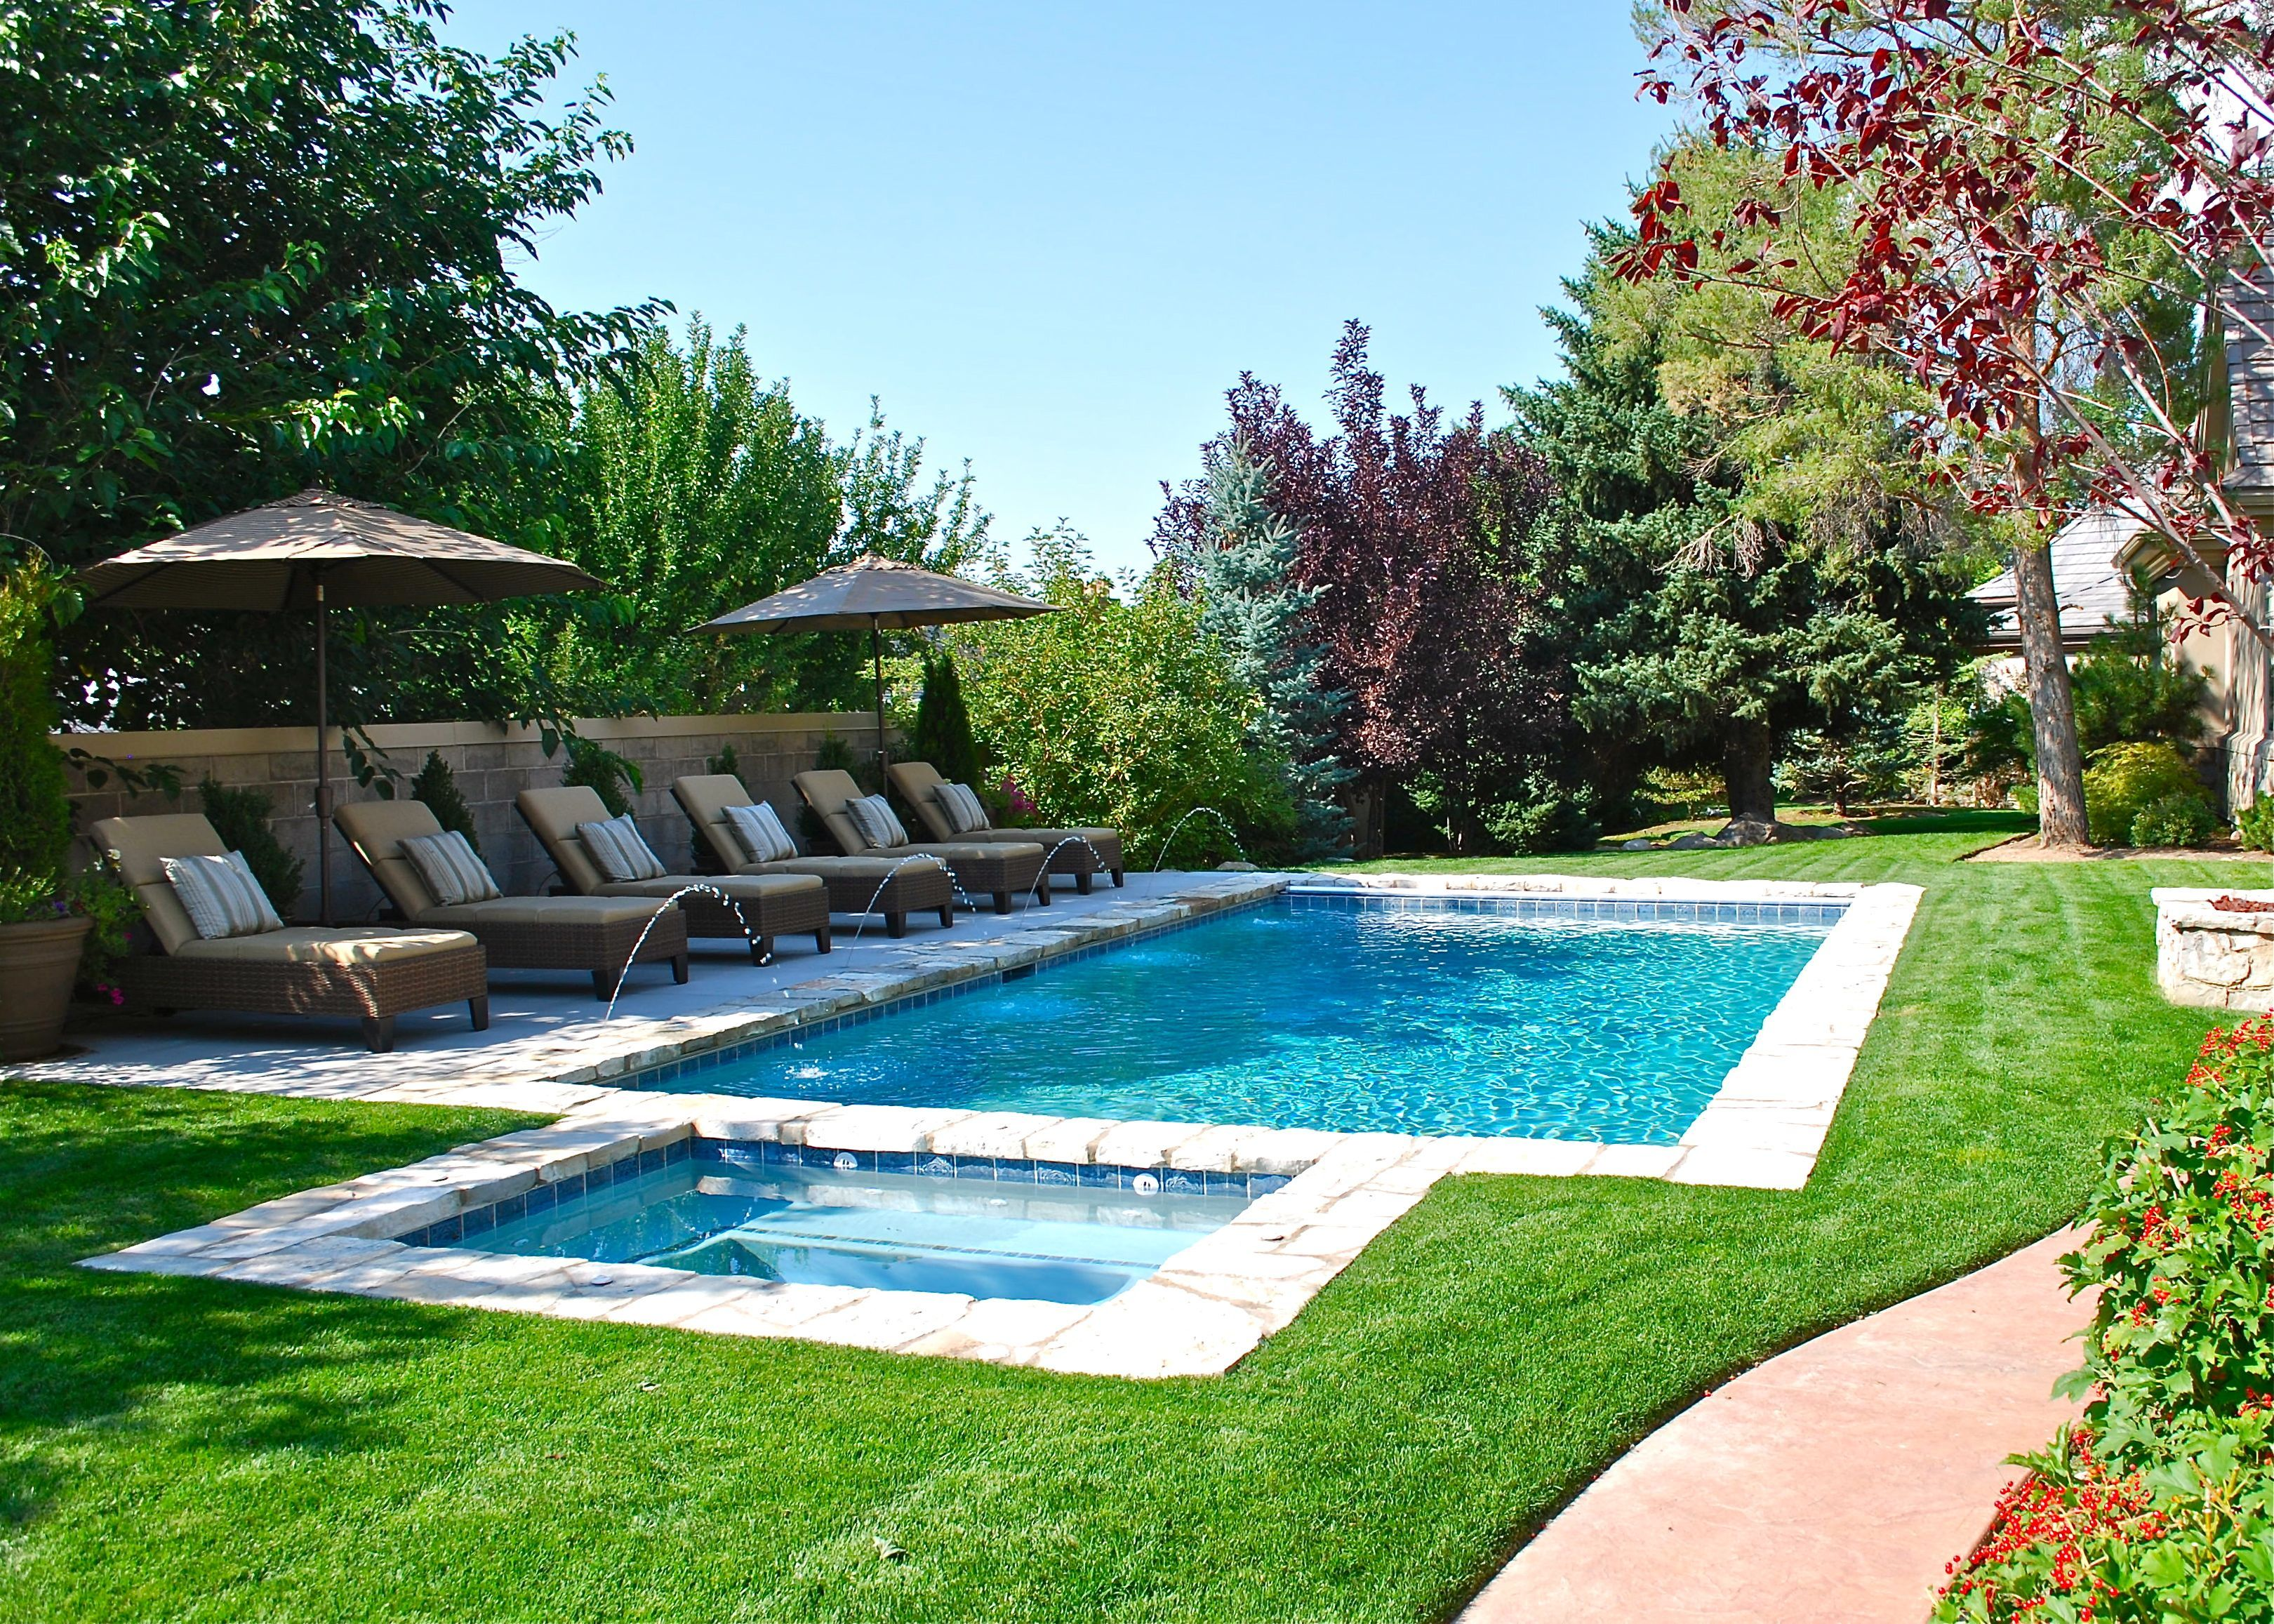 Backyard swimming pool with minimal decking deckjets and for Pool landscape design